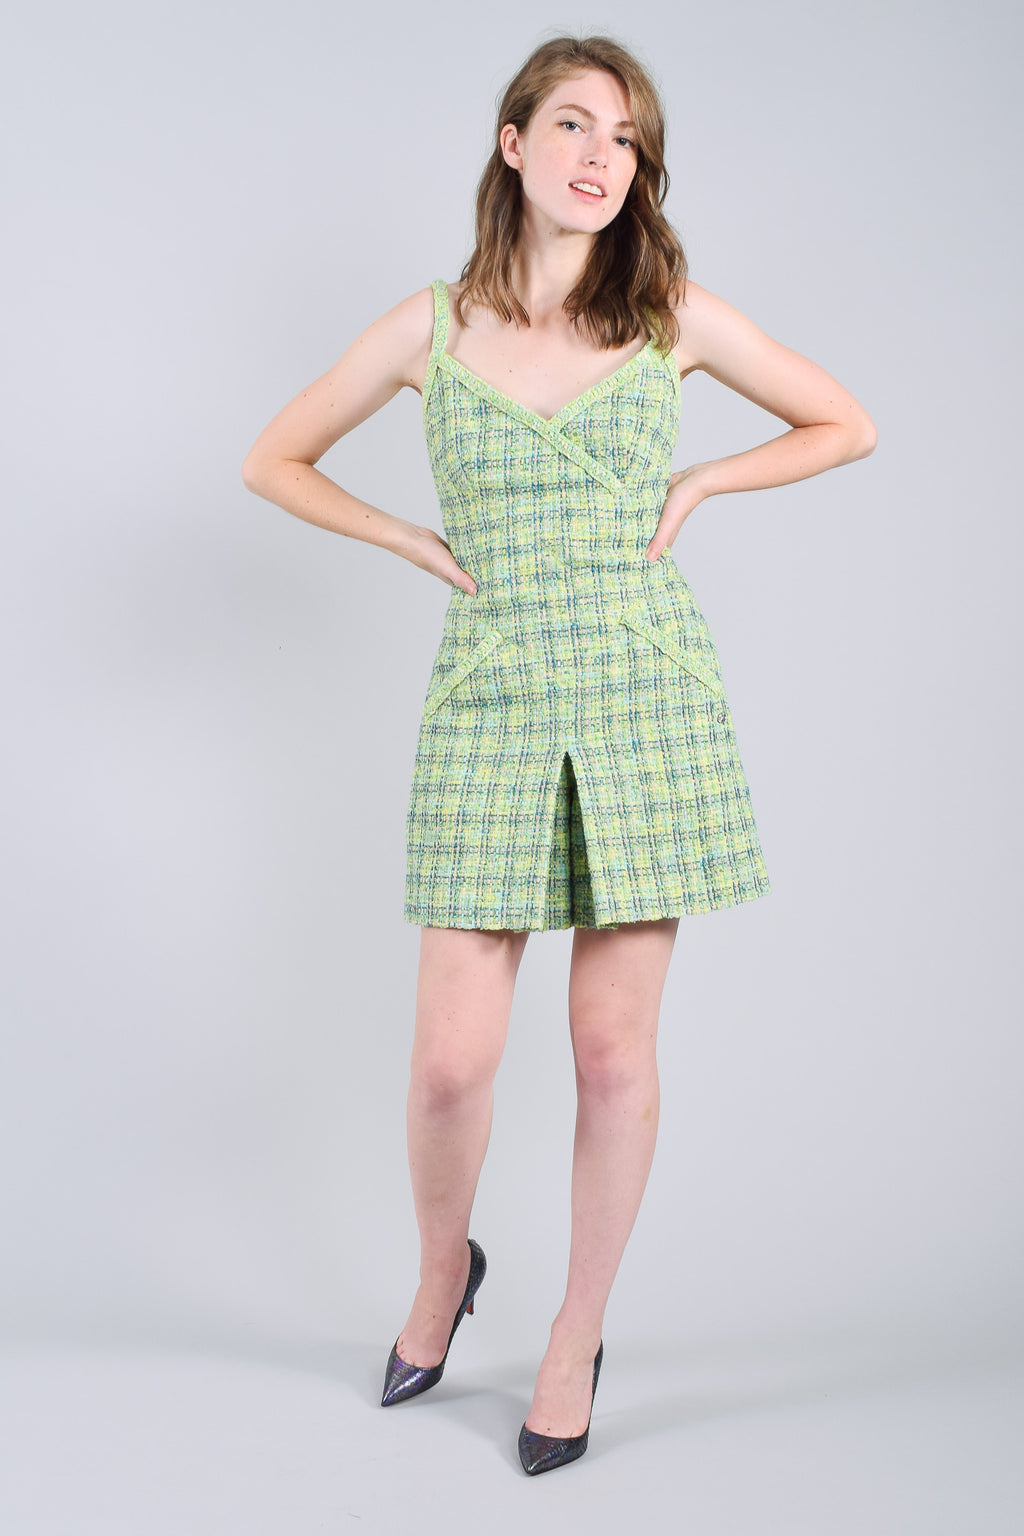 Chanel Green and Blue Tweed Romper Size 38